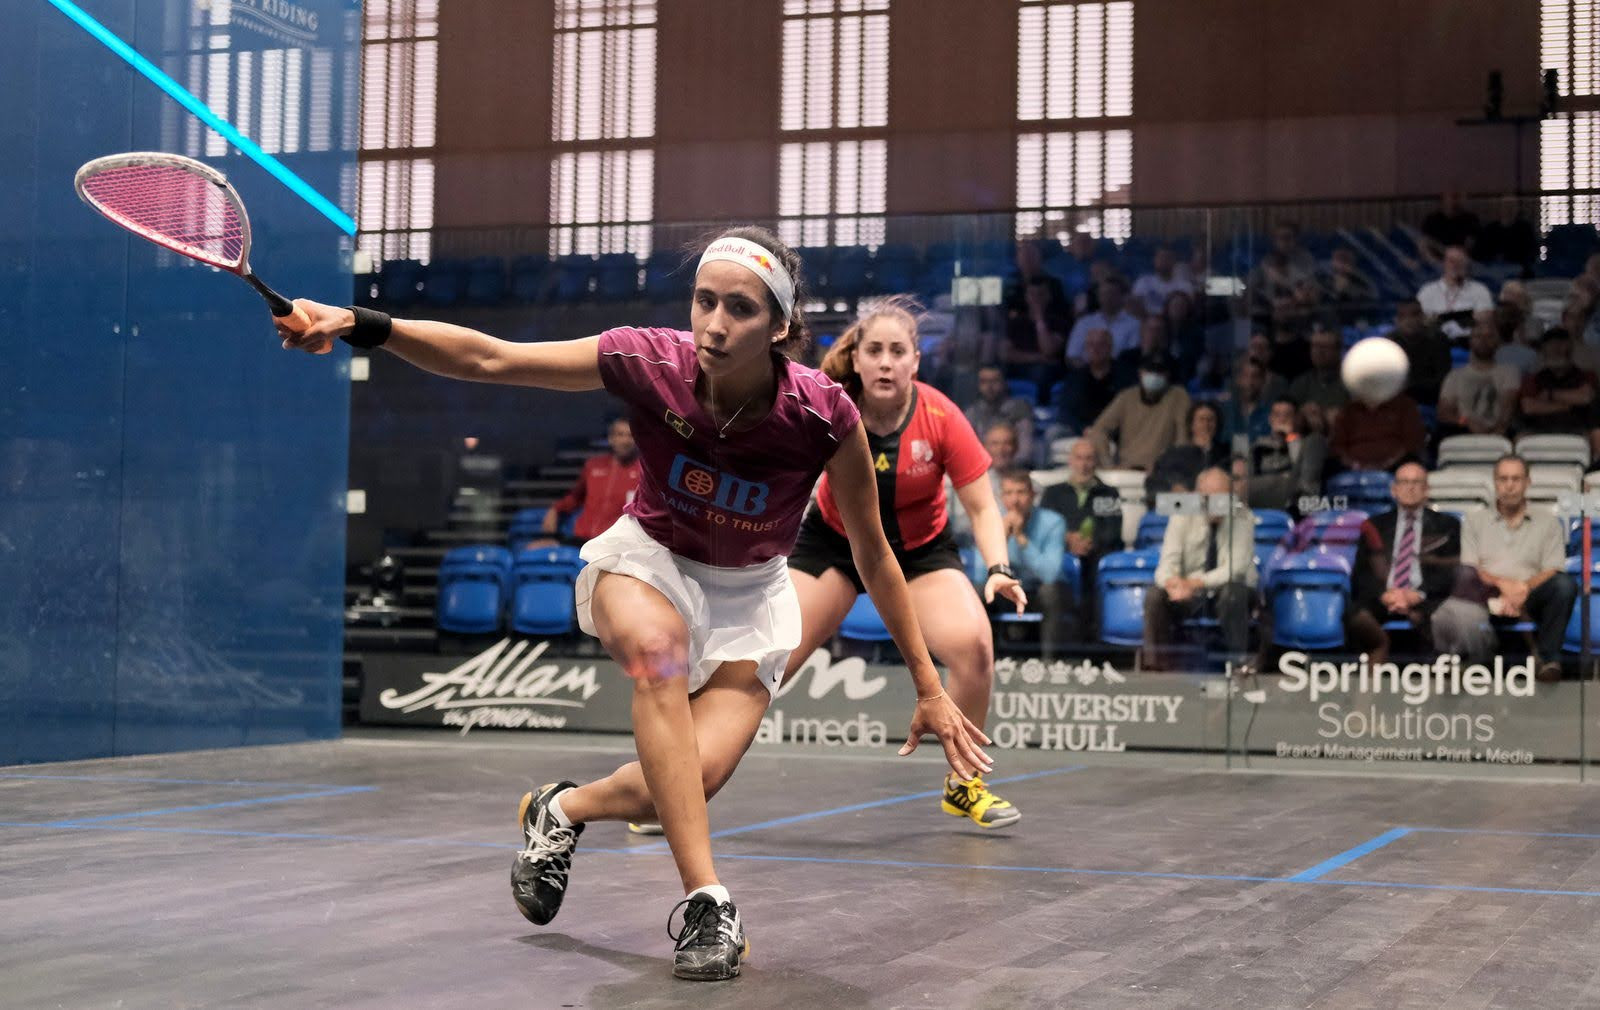 Seeded players progress to quarter-finals of British Open squash